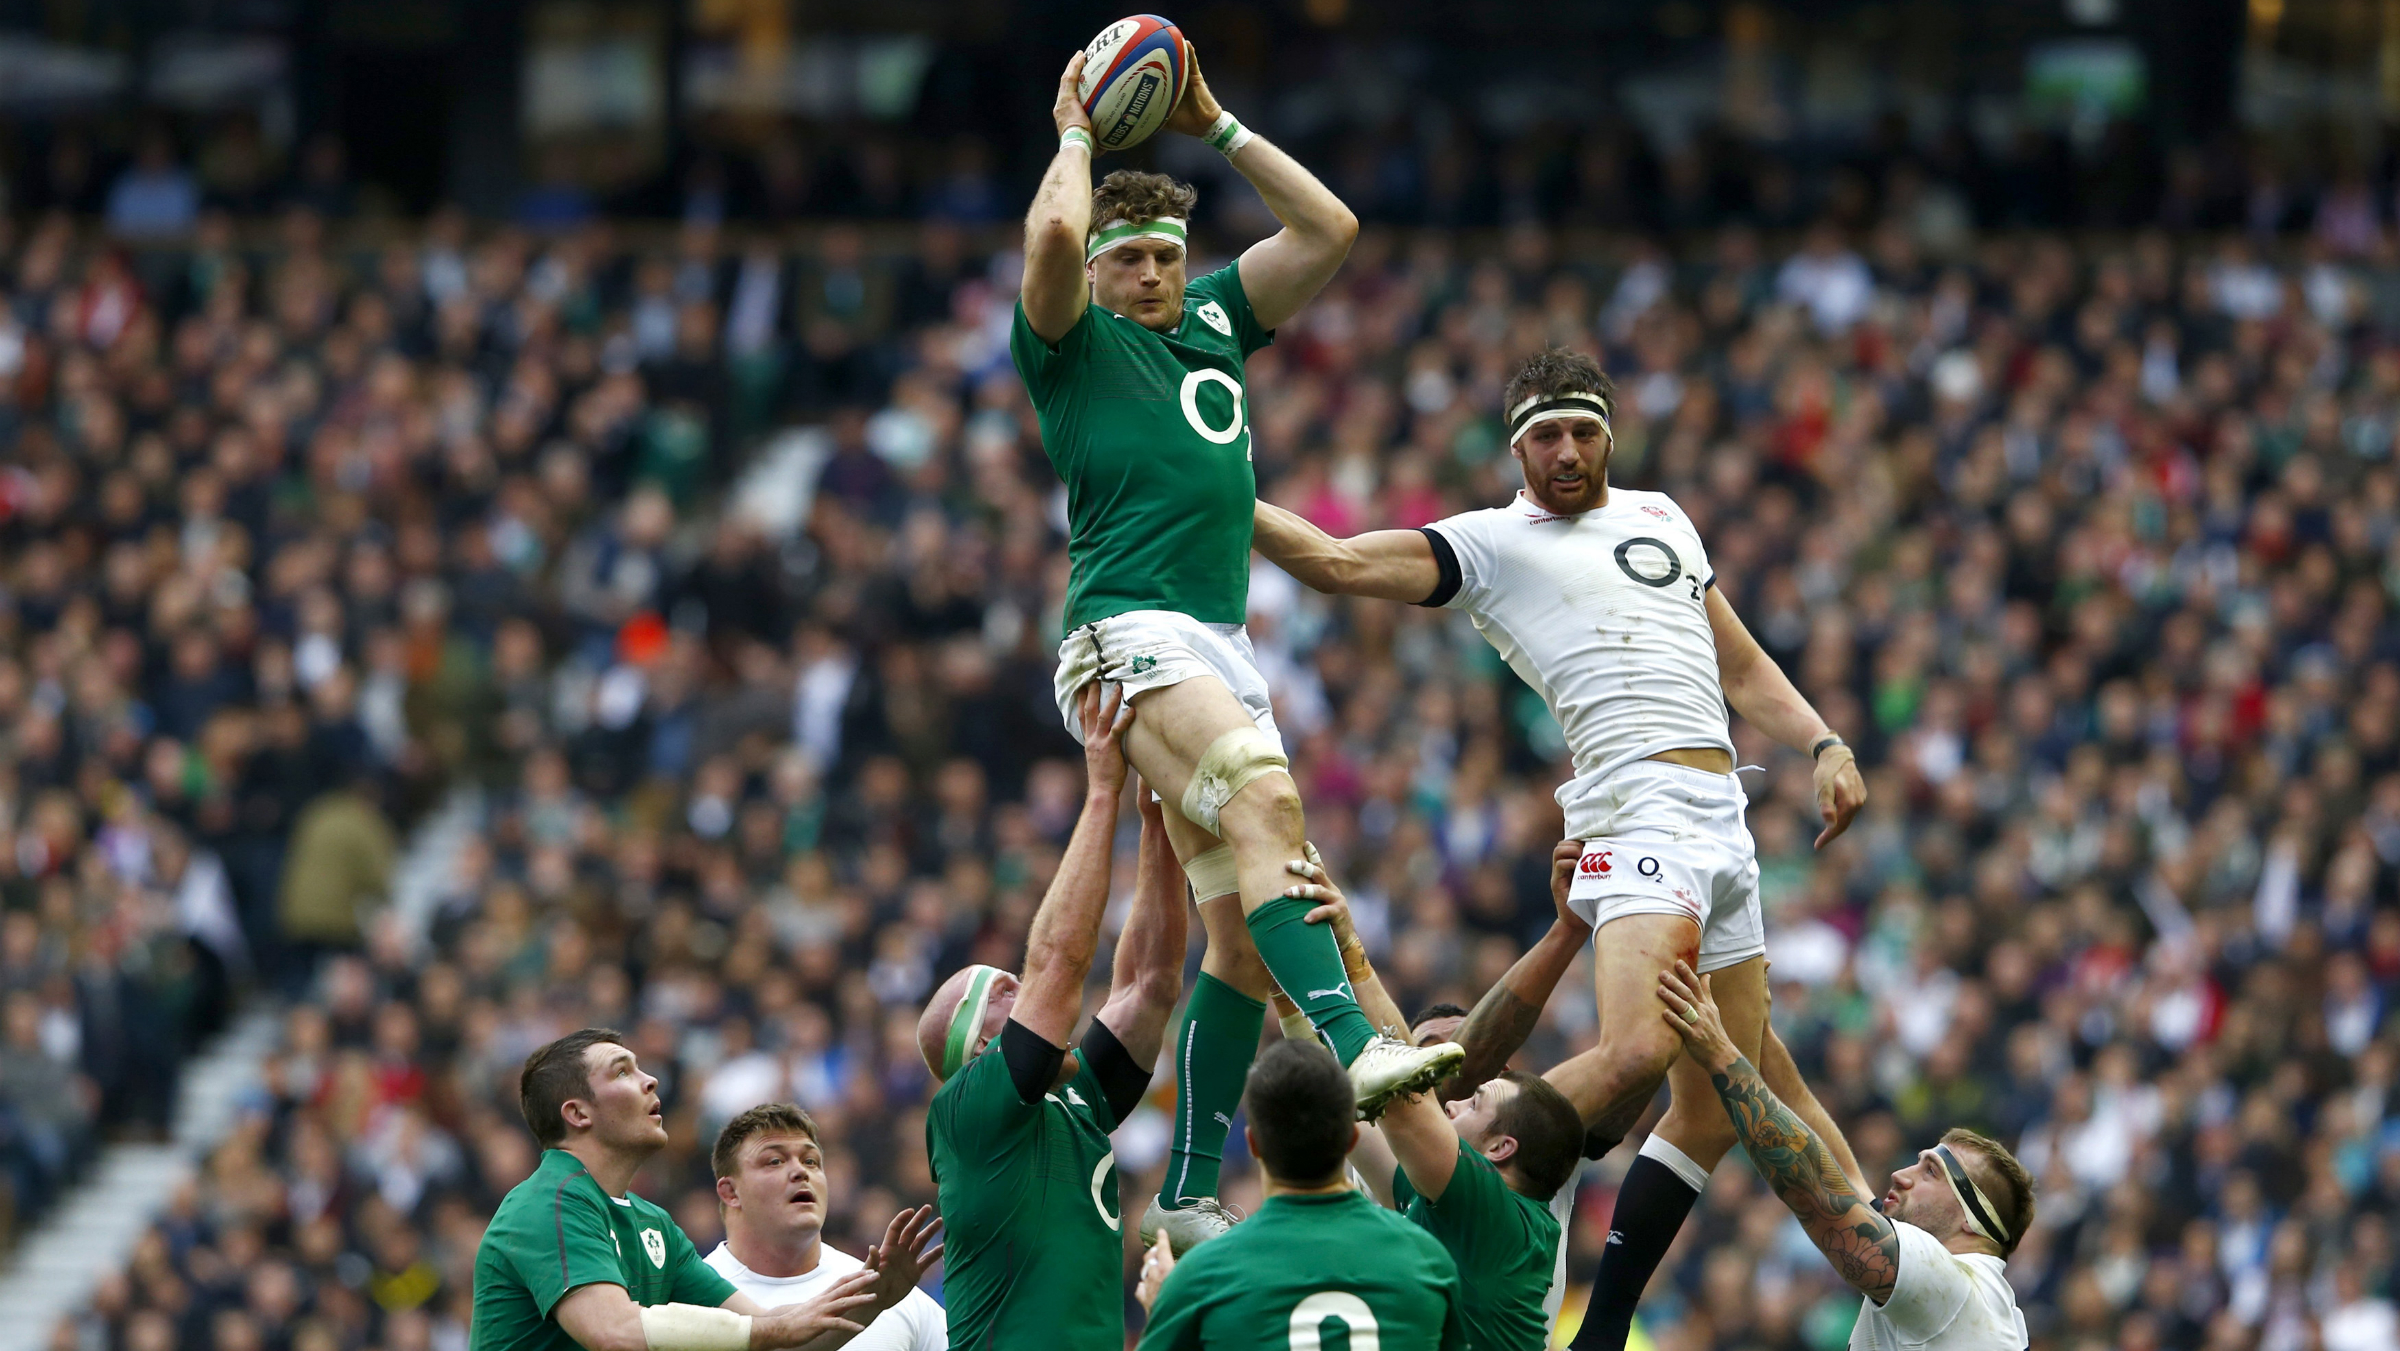 Something has been giving the Irish a lift.